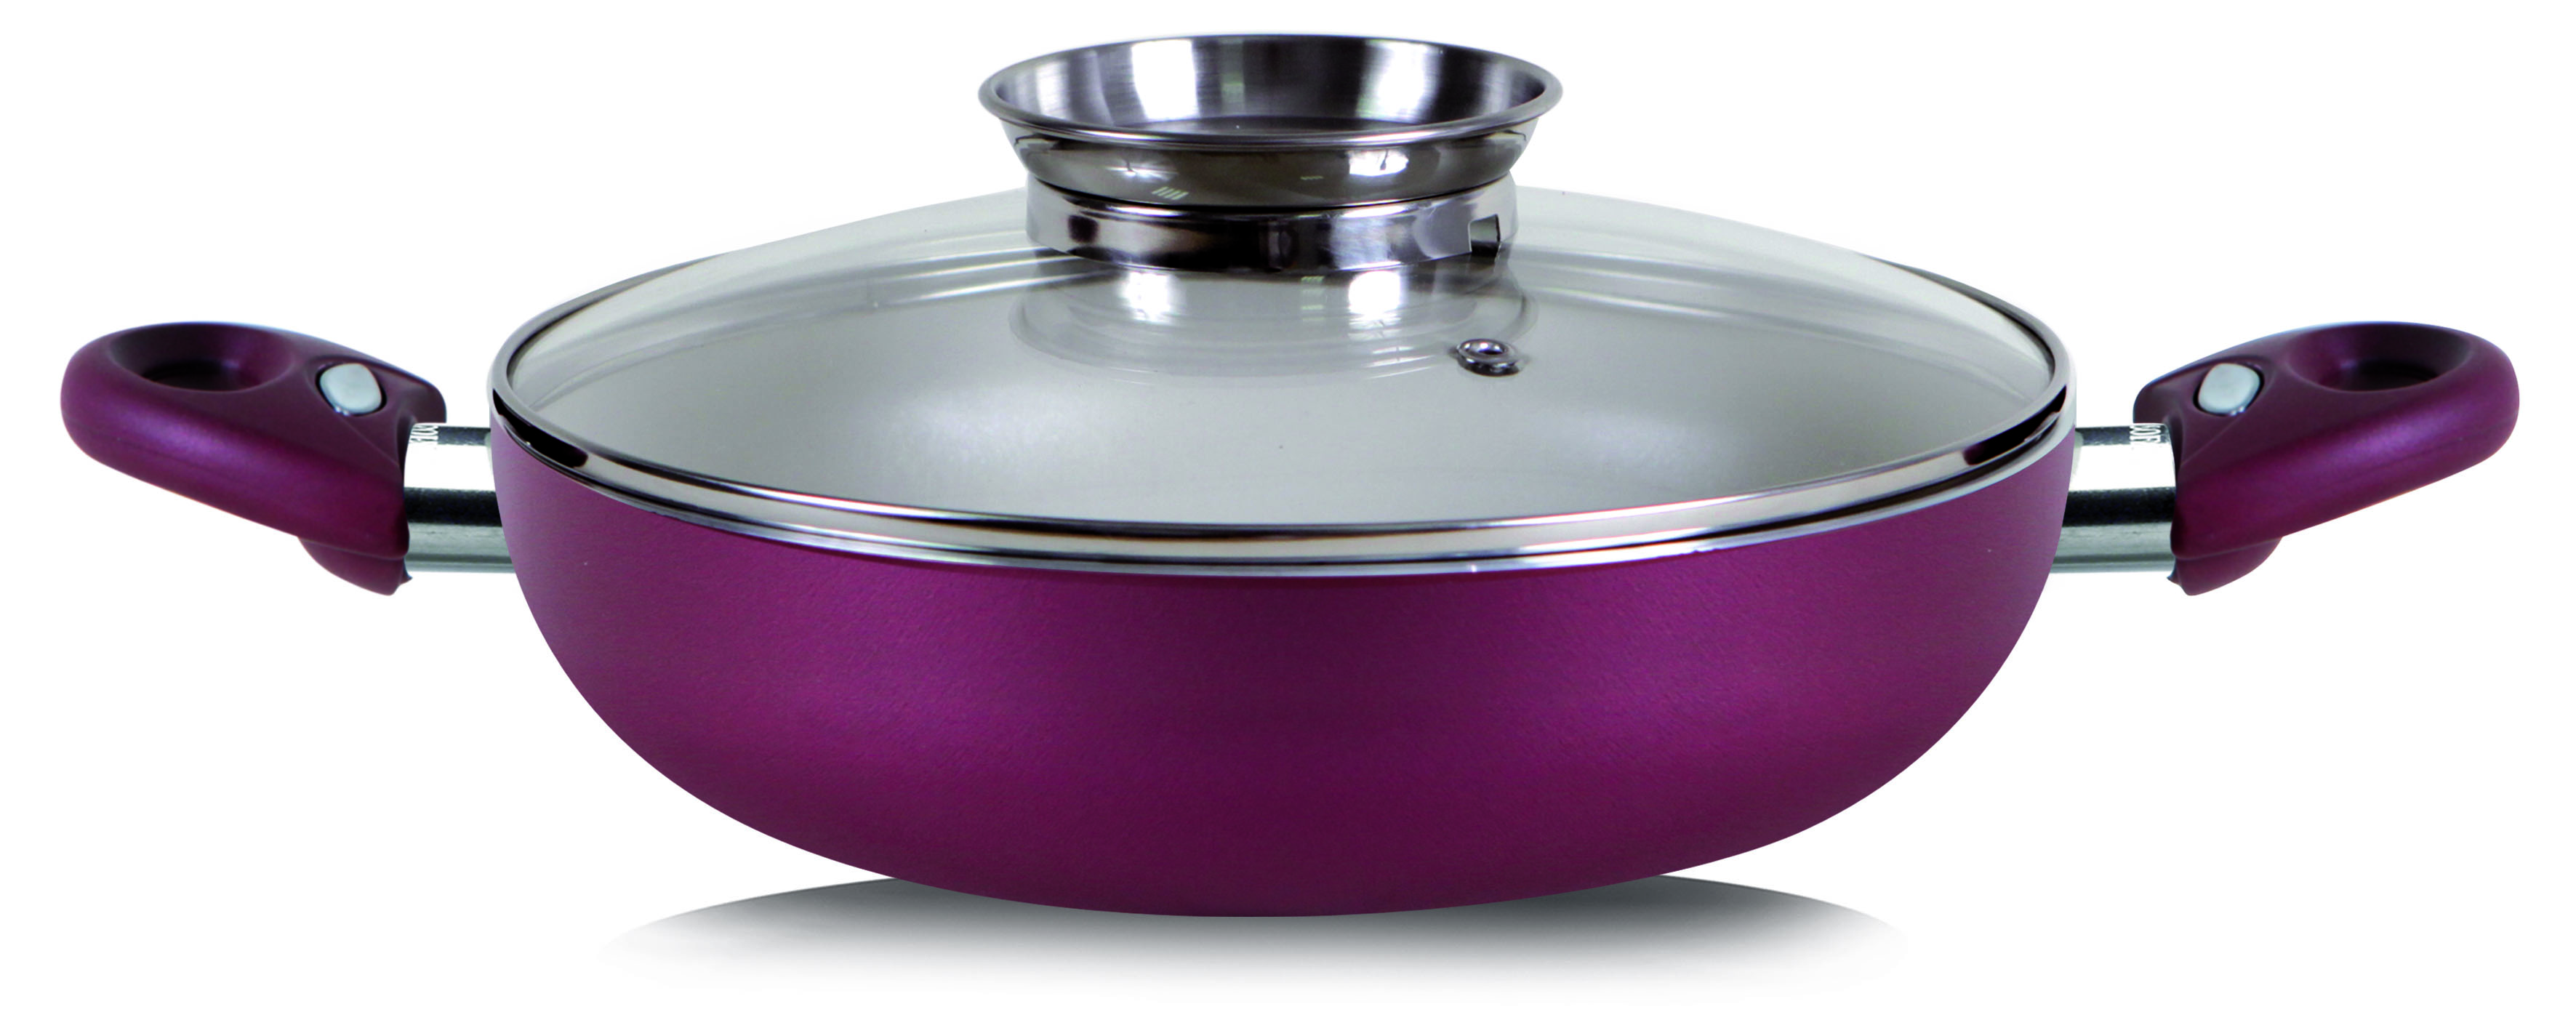 Princess Passion Skillet Round 2 Handle With Aroma Glass Lid